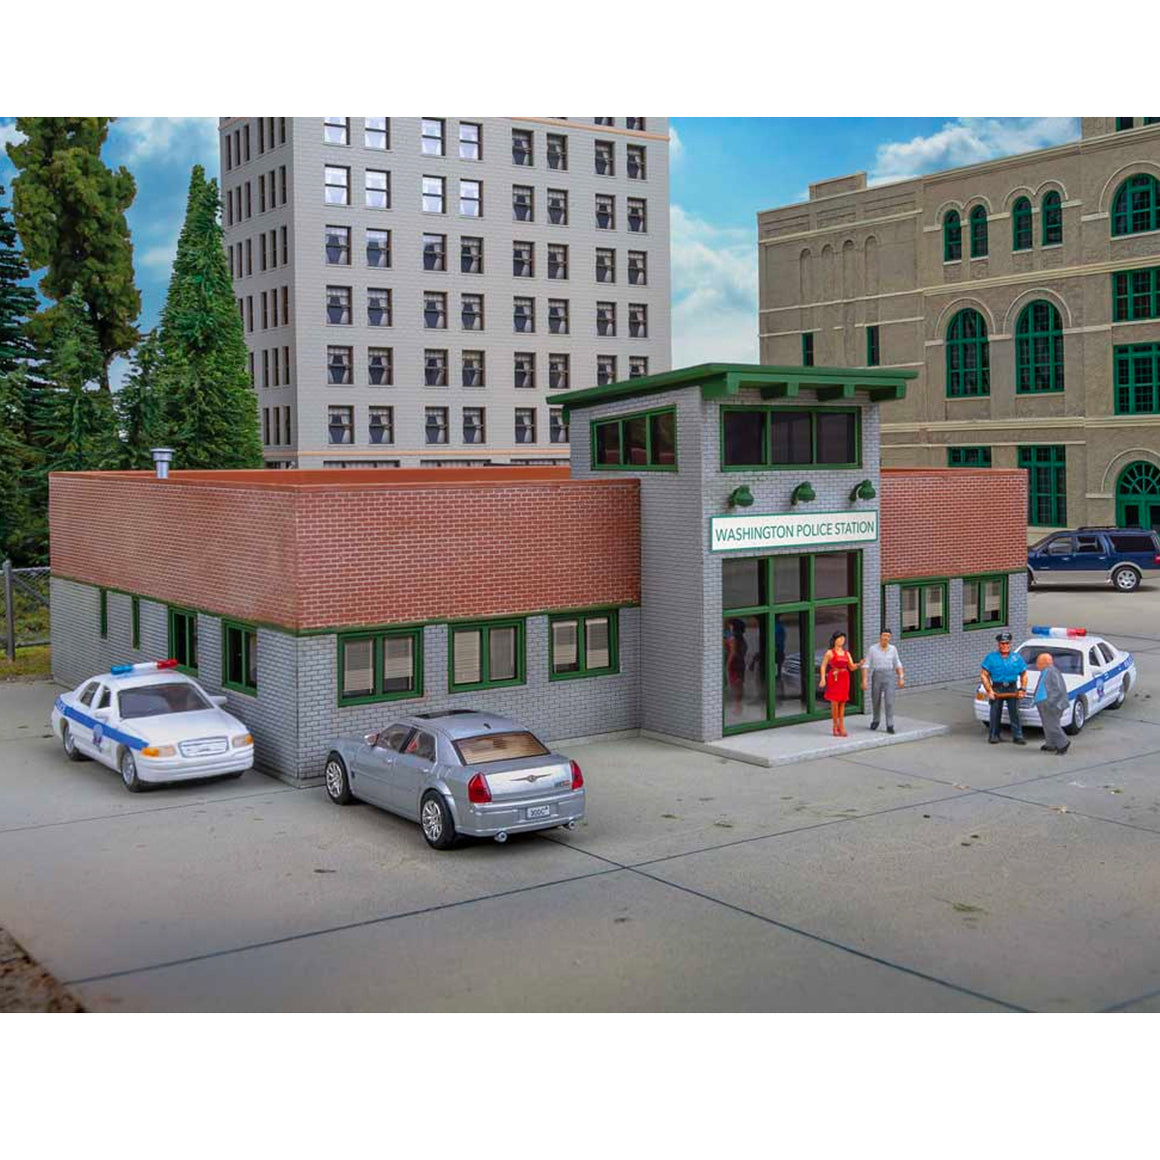 HO Scale: Modern Police Station - Kit